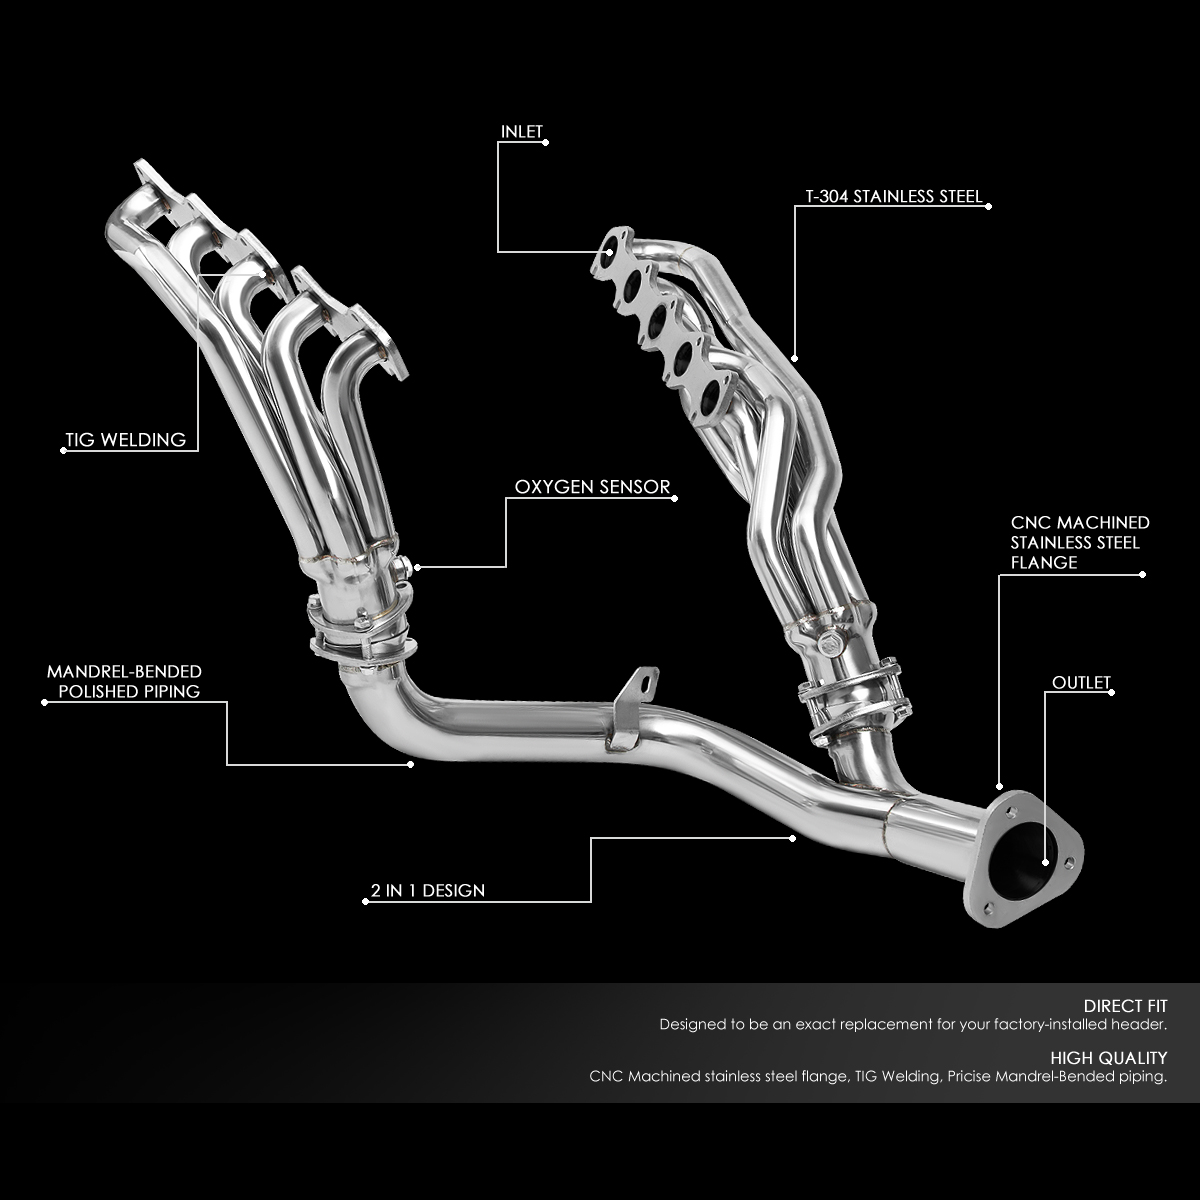 hight resolution of for 1999 2004 ford f250 f350 super duty 6 8l v10 stainless steel mid length exhaust header manifold w y pipe walmart com